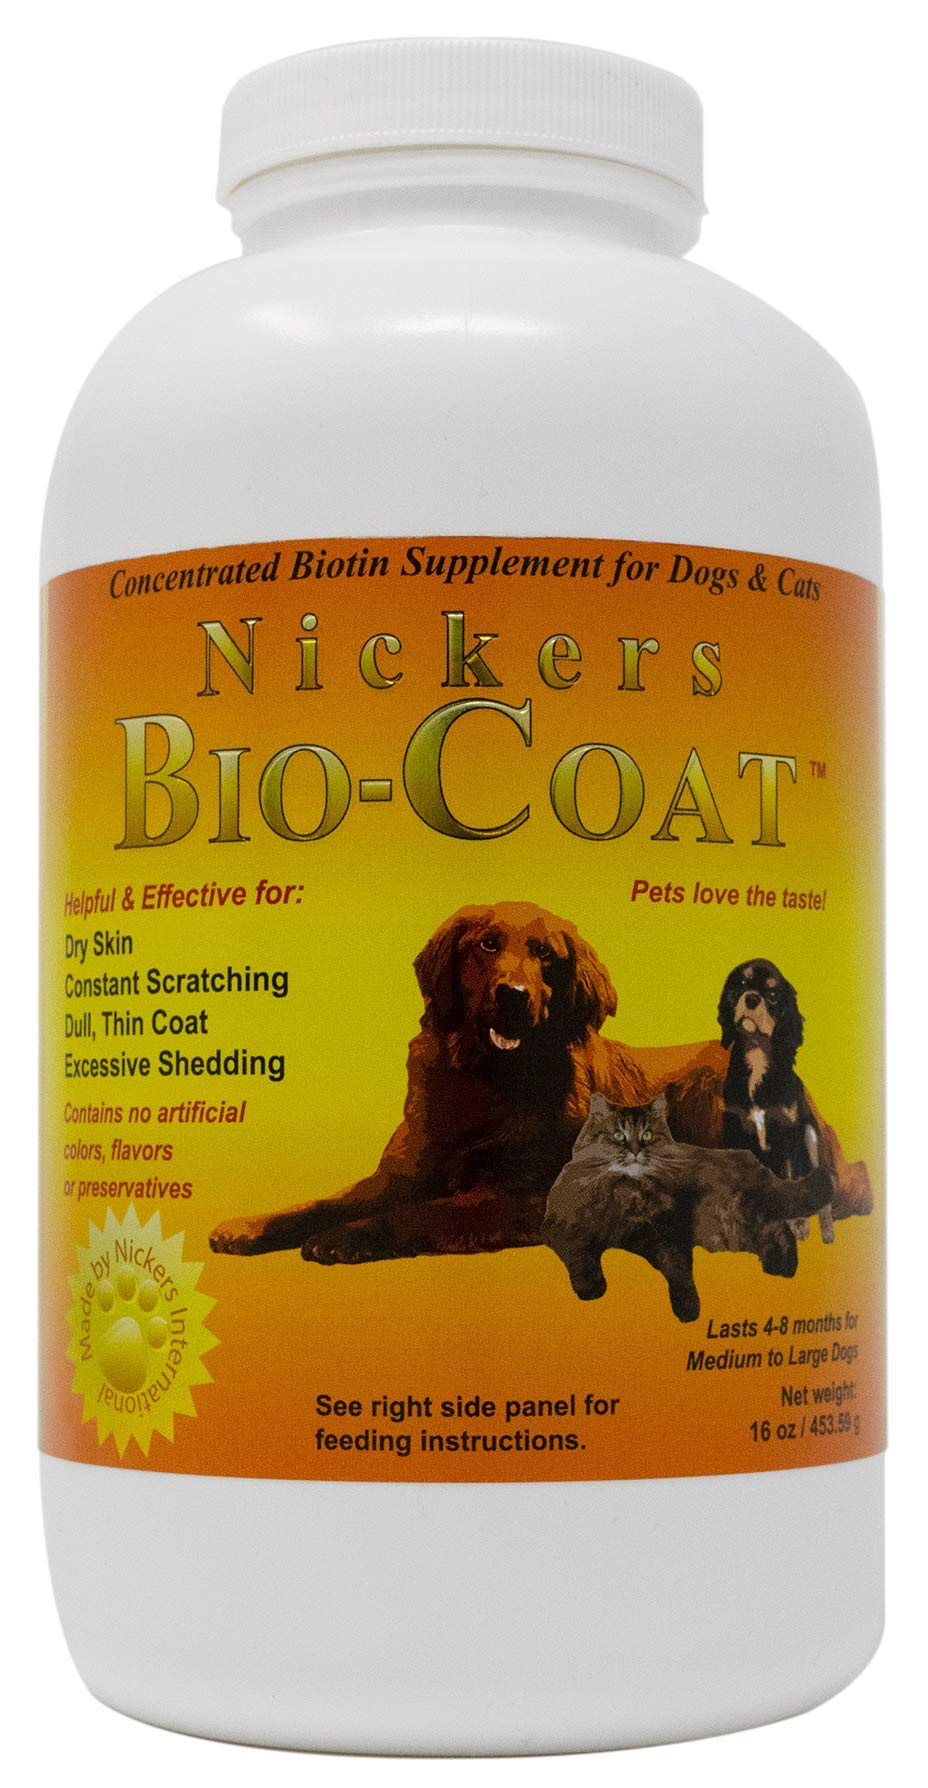 Bio Coat Concentrated Biotin Supplement - 16 oz by Nickers